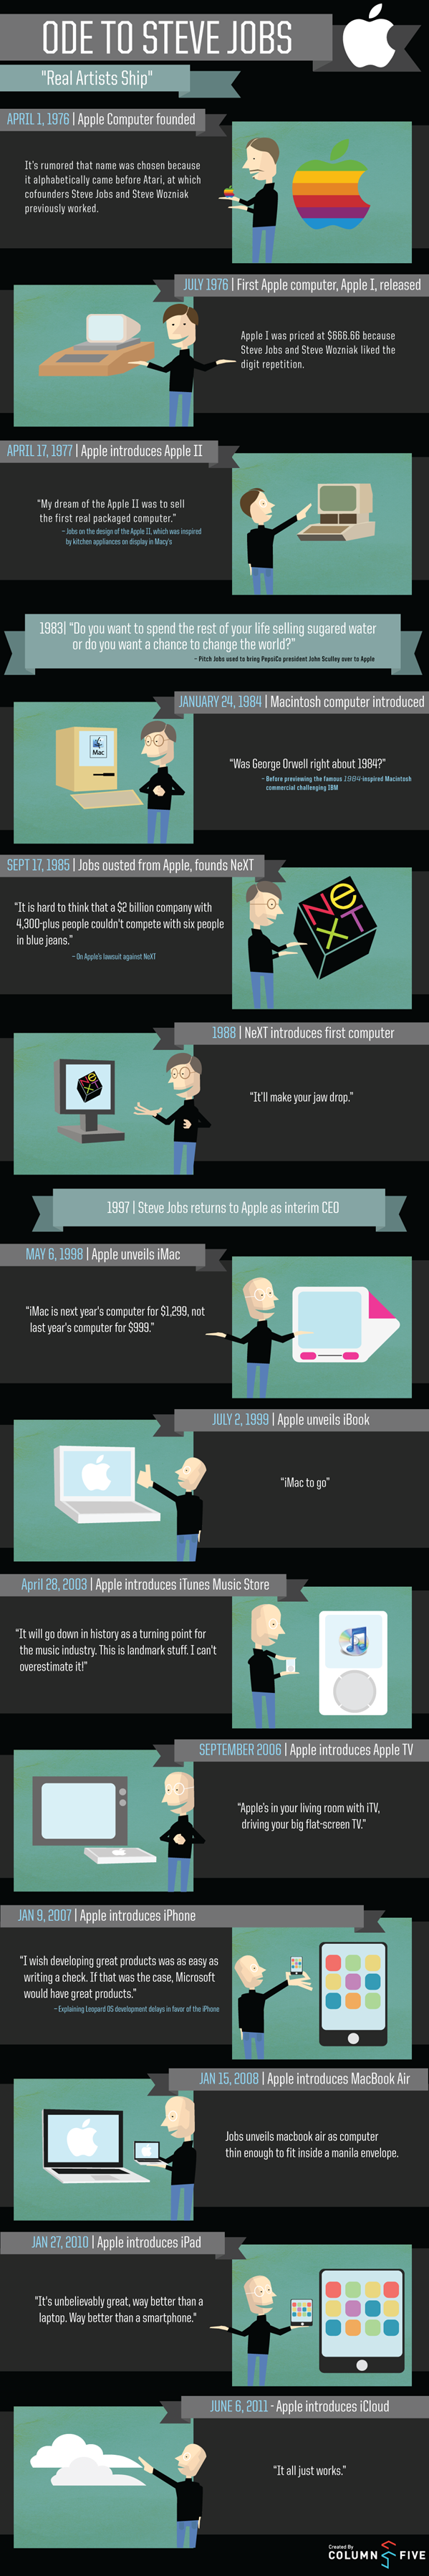 This Infographic Shows All Steve Jobs Great